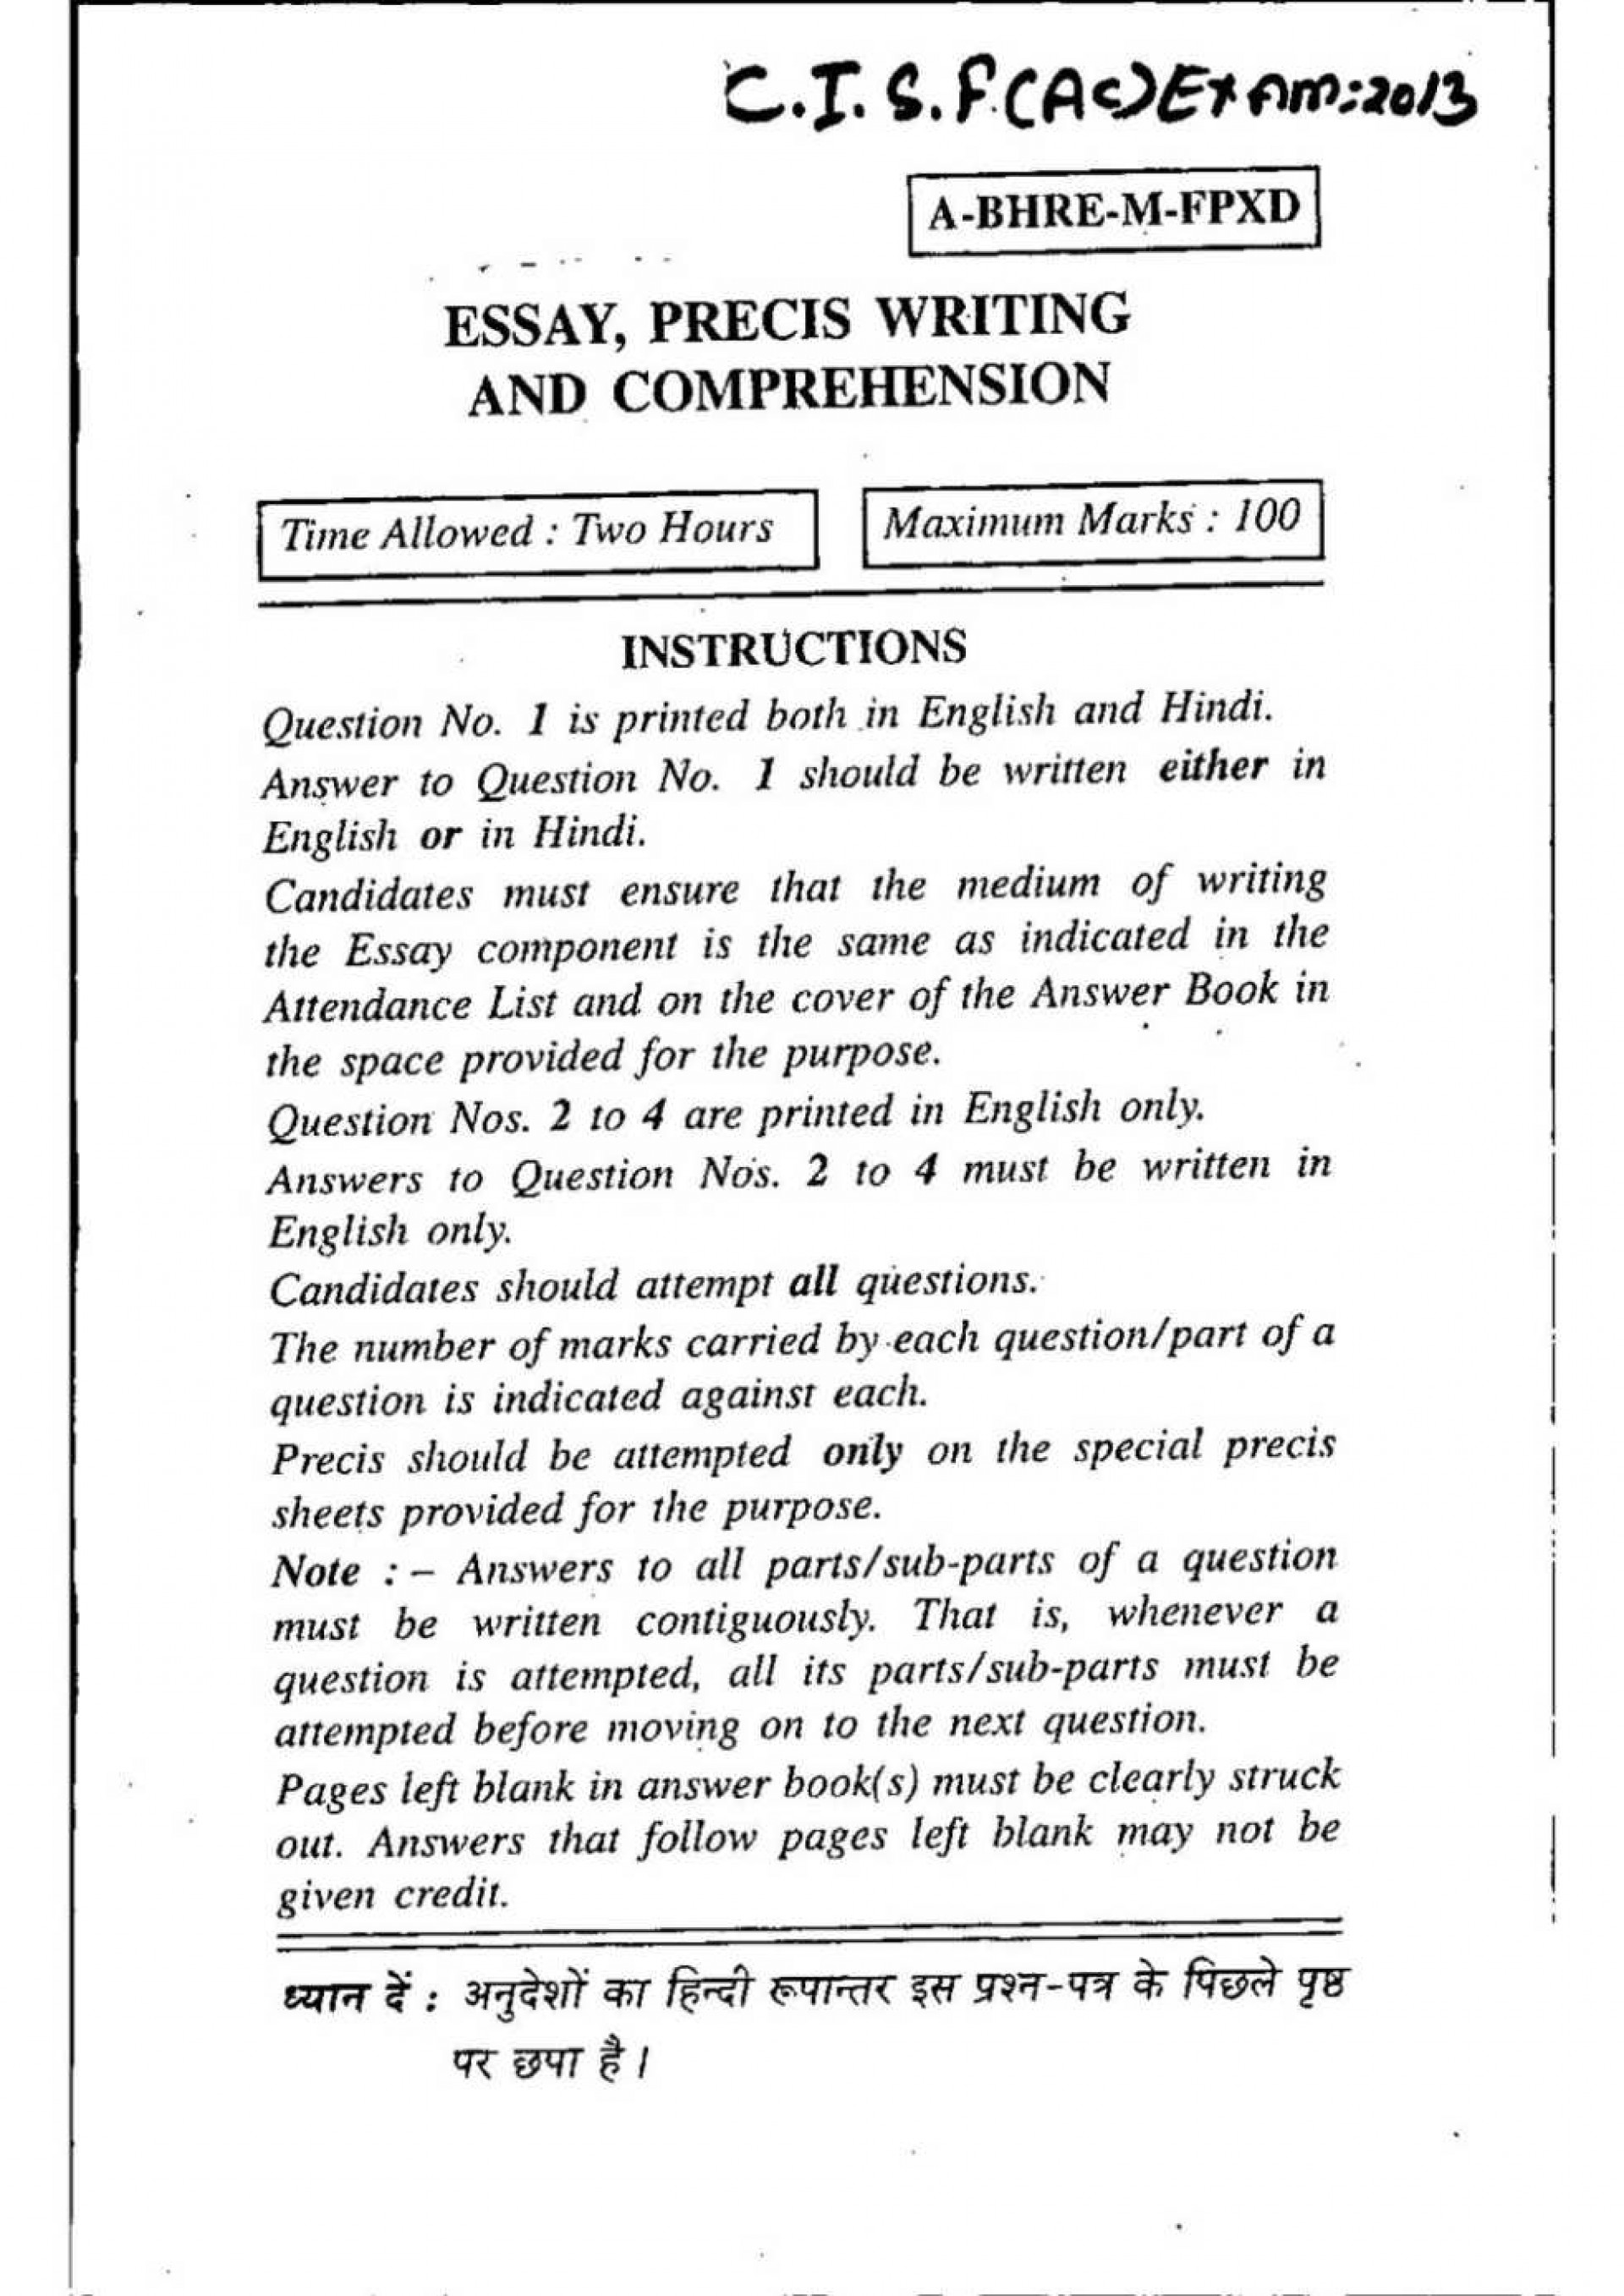 017 Upsc Cisf Ltd Departmental Competitive Exam Essay Precis Writing And Compreh On Music Marvelous Musical Instruments Importance Of Culture 1920